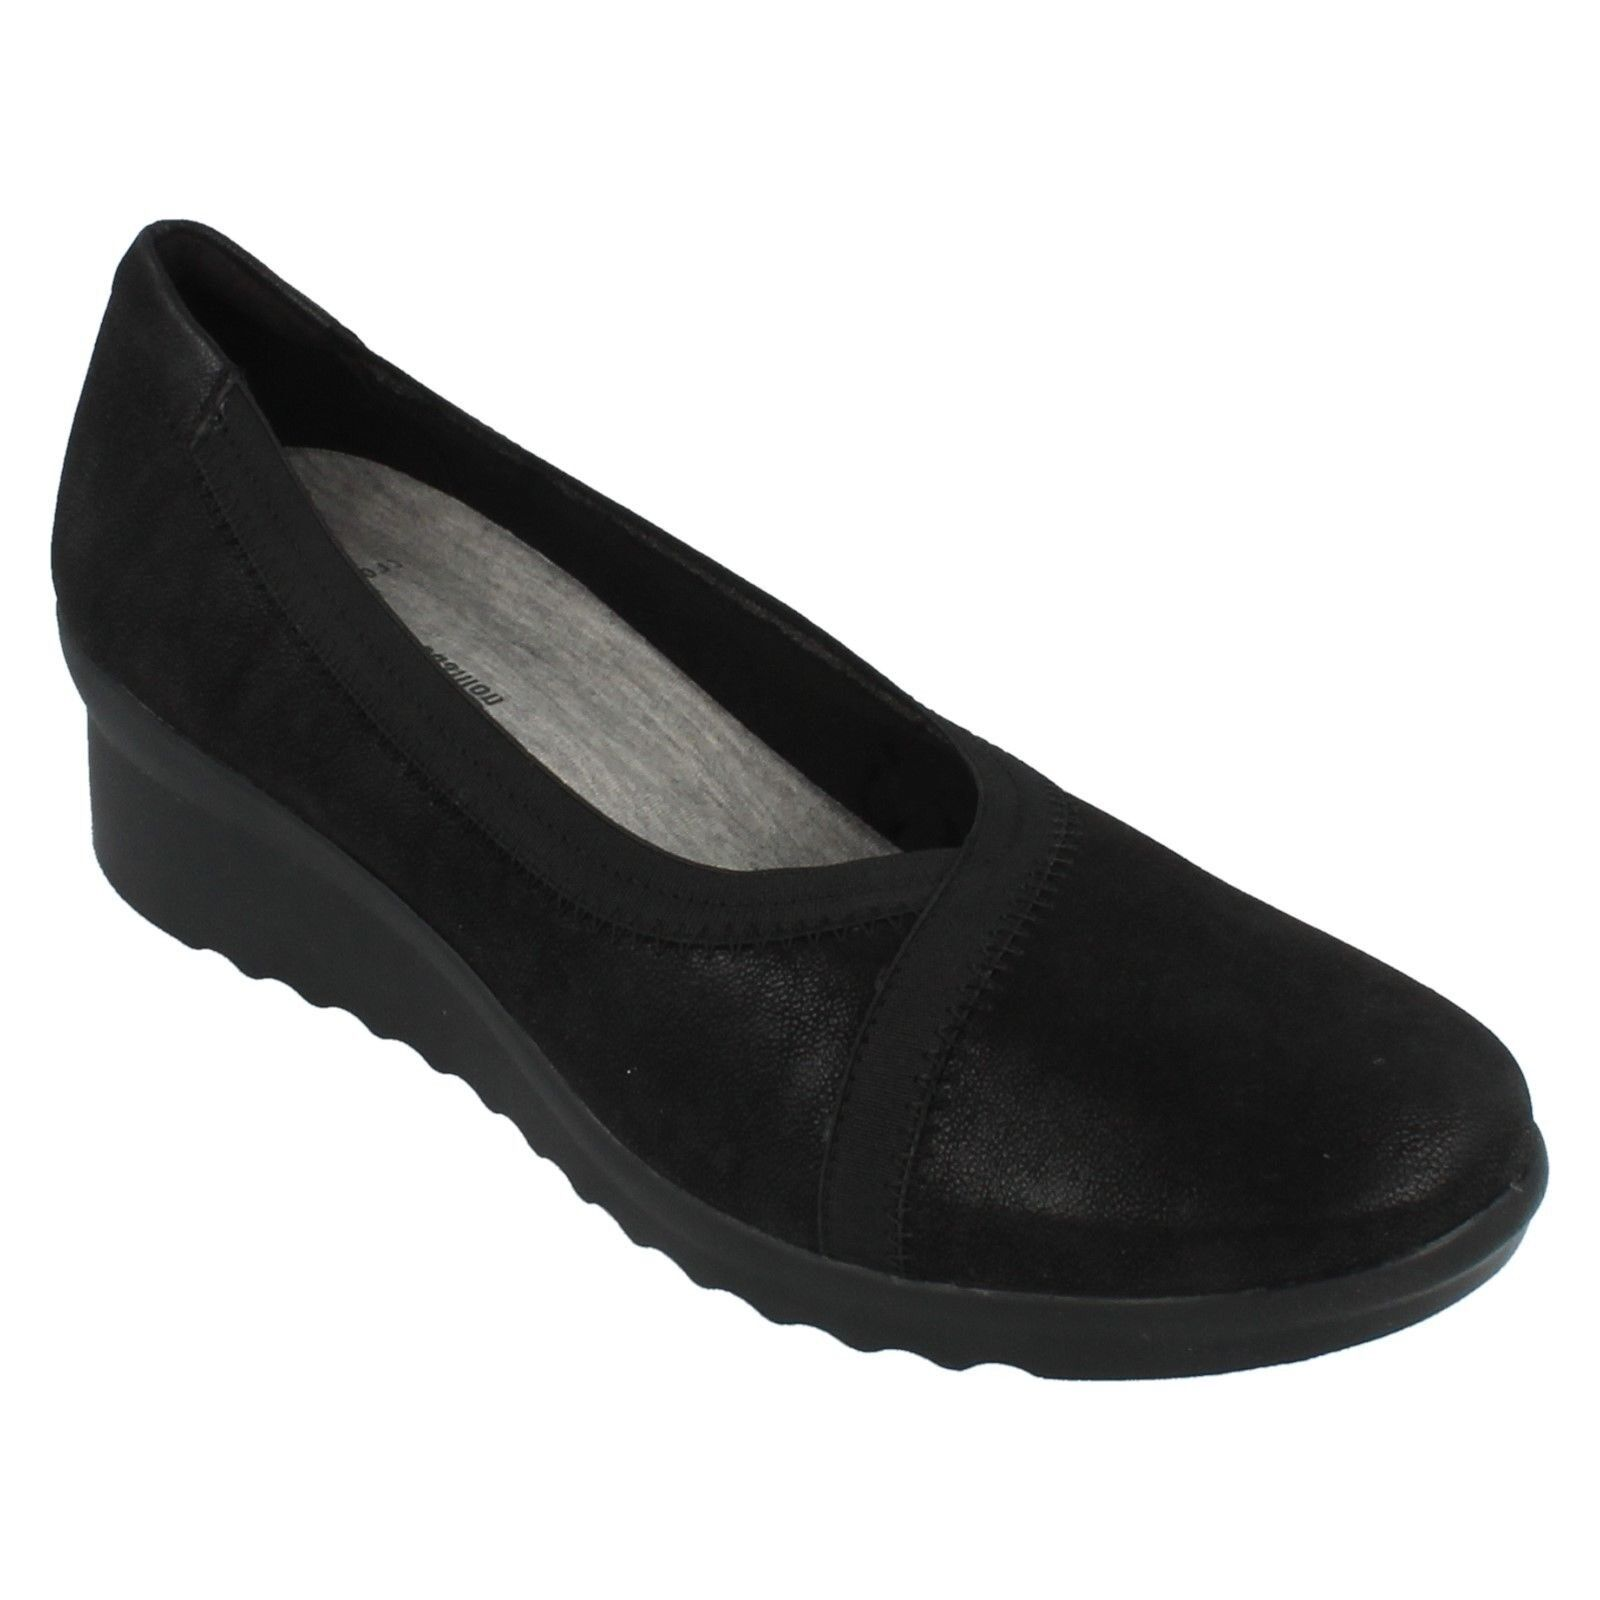 LADIES CLARKS CLARKS LADIES BLACK SLIP ON CLOUSTEPPERS SOFT WEDGE Schuhe SIZE CADDELL DASH a92db3